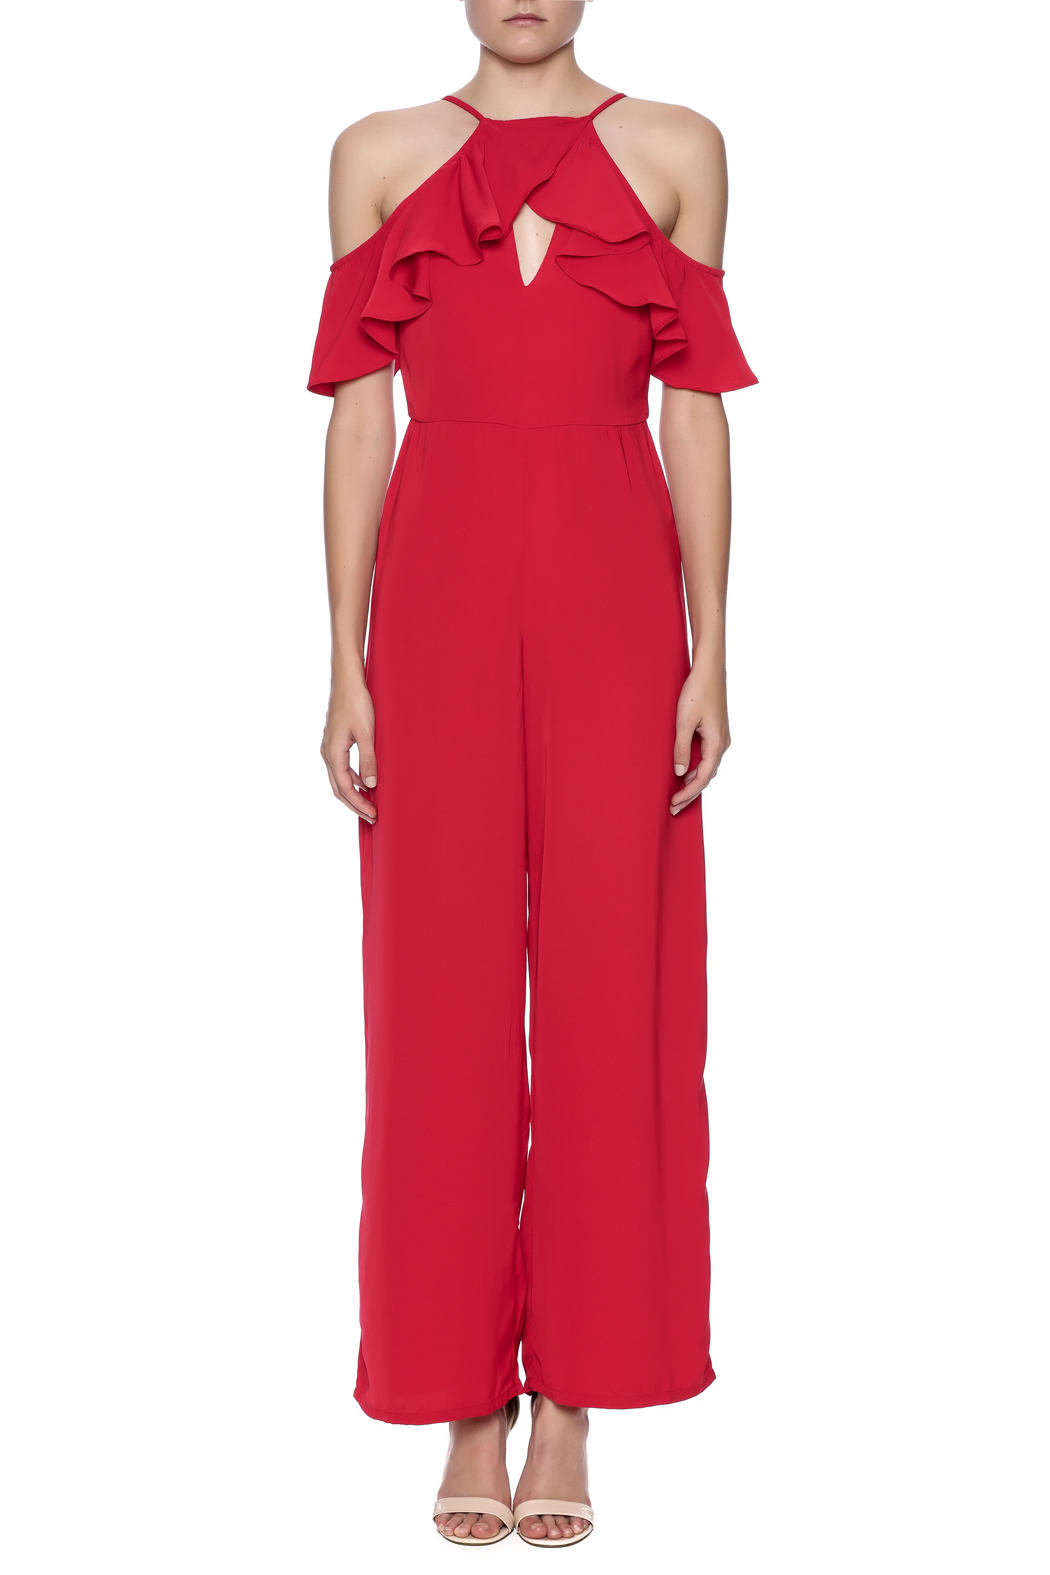 7e8f1777089 Mustard Seed Red Ruffle Jumpsuit from New York by Dor L Dor — Shoptiques